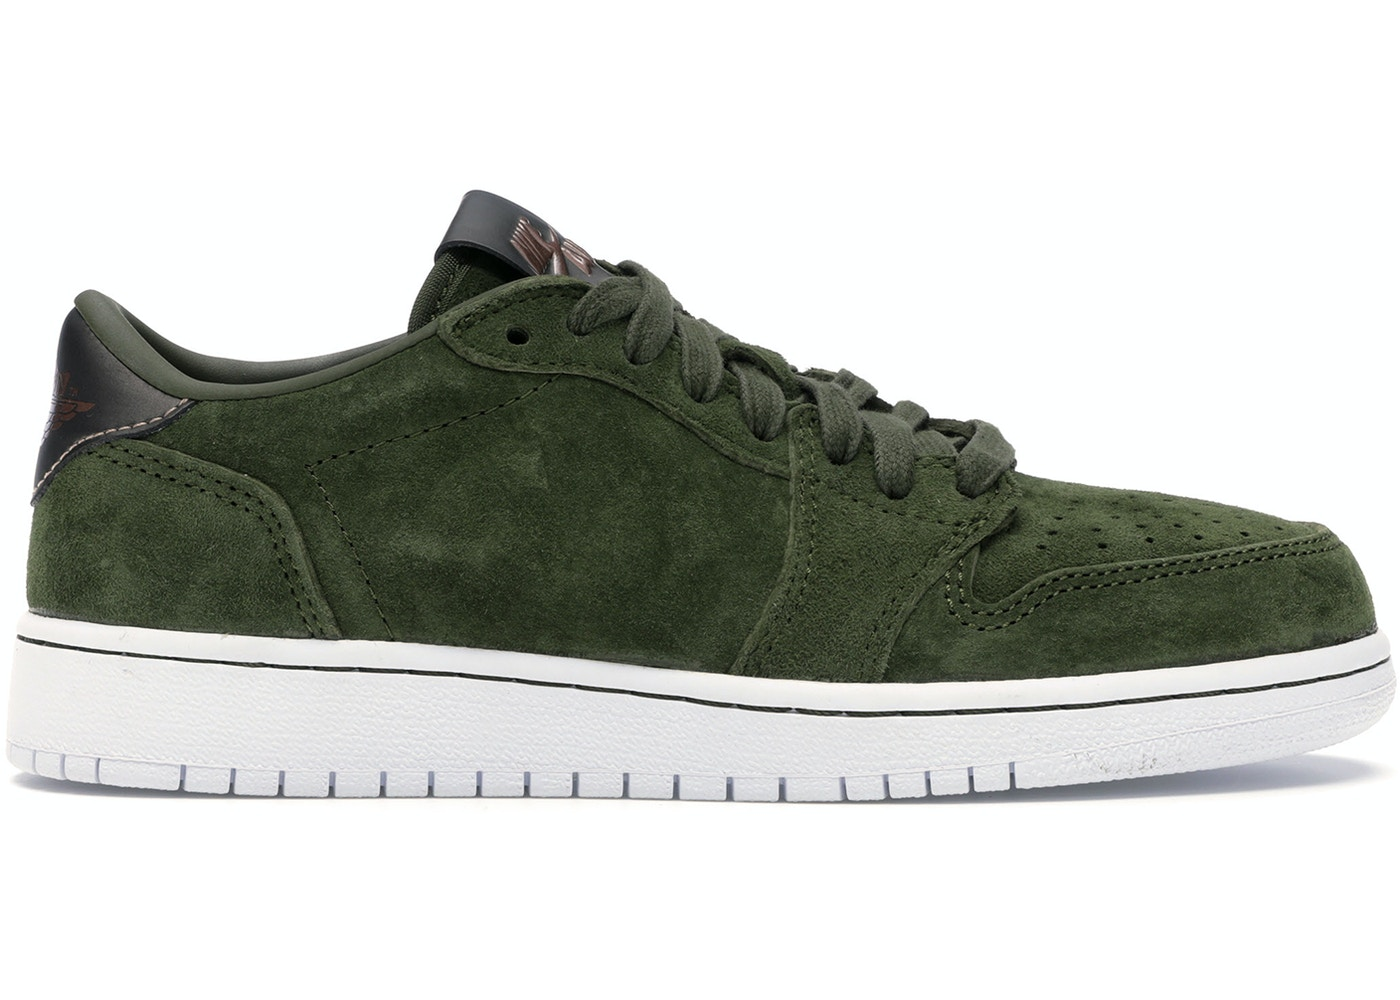 8b8b98dc5929 Jordan 1 Retro Low NS Legion Green (GS) - 919705-330